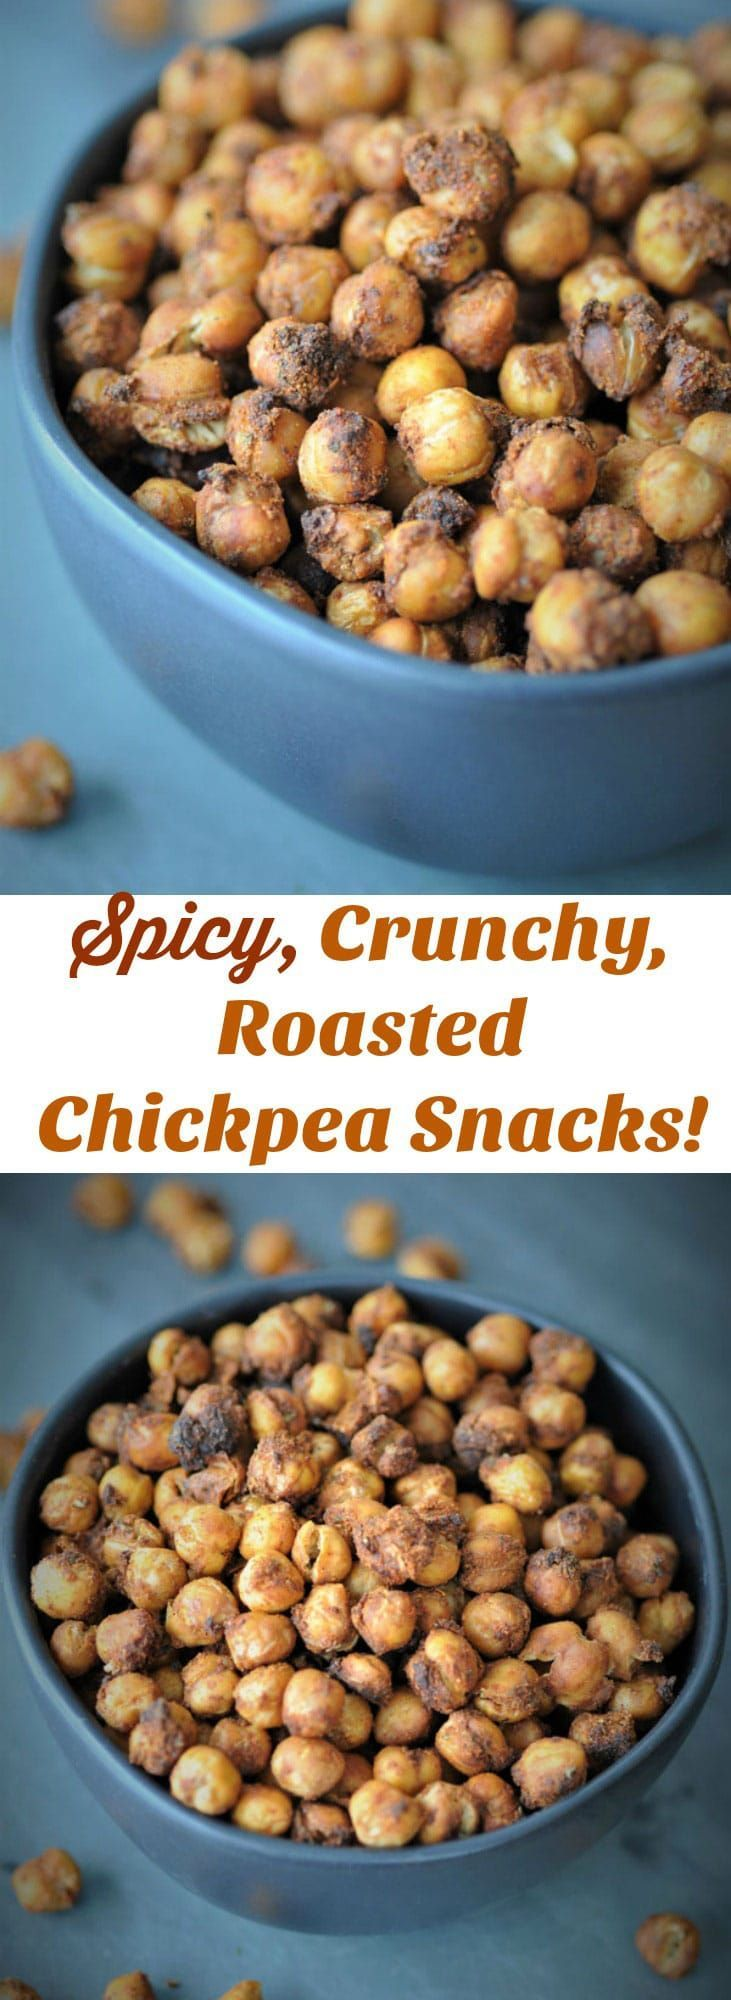 Spicy Crunchy Roasted Chickpea Snacks Recipe Roasted Chickpeas Chickpea Snacks Snacks